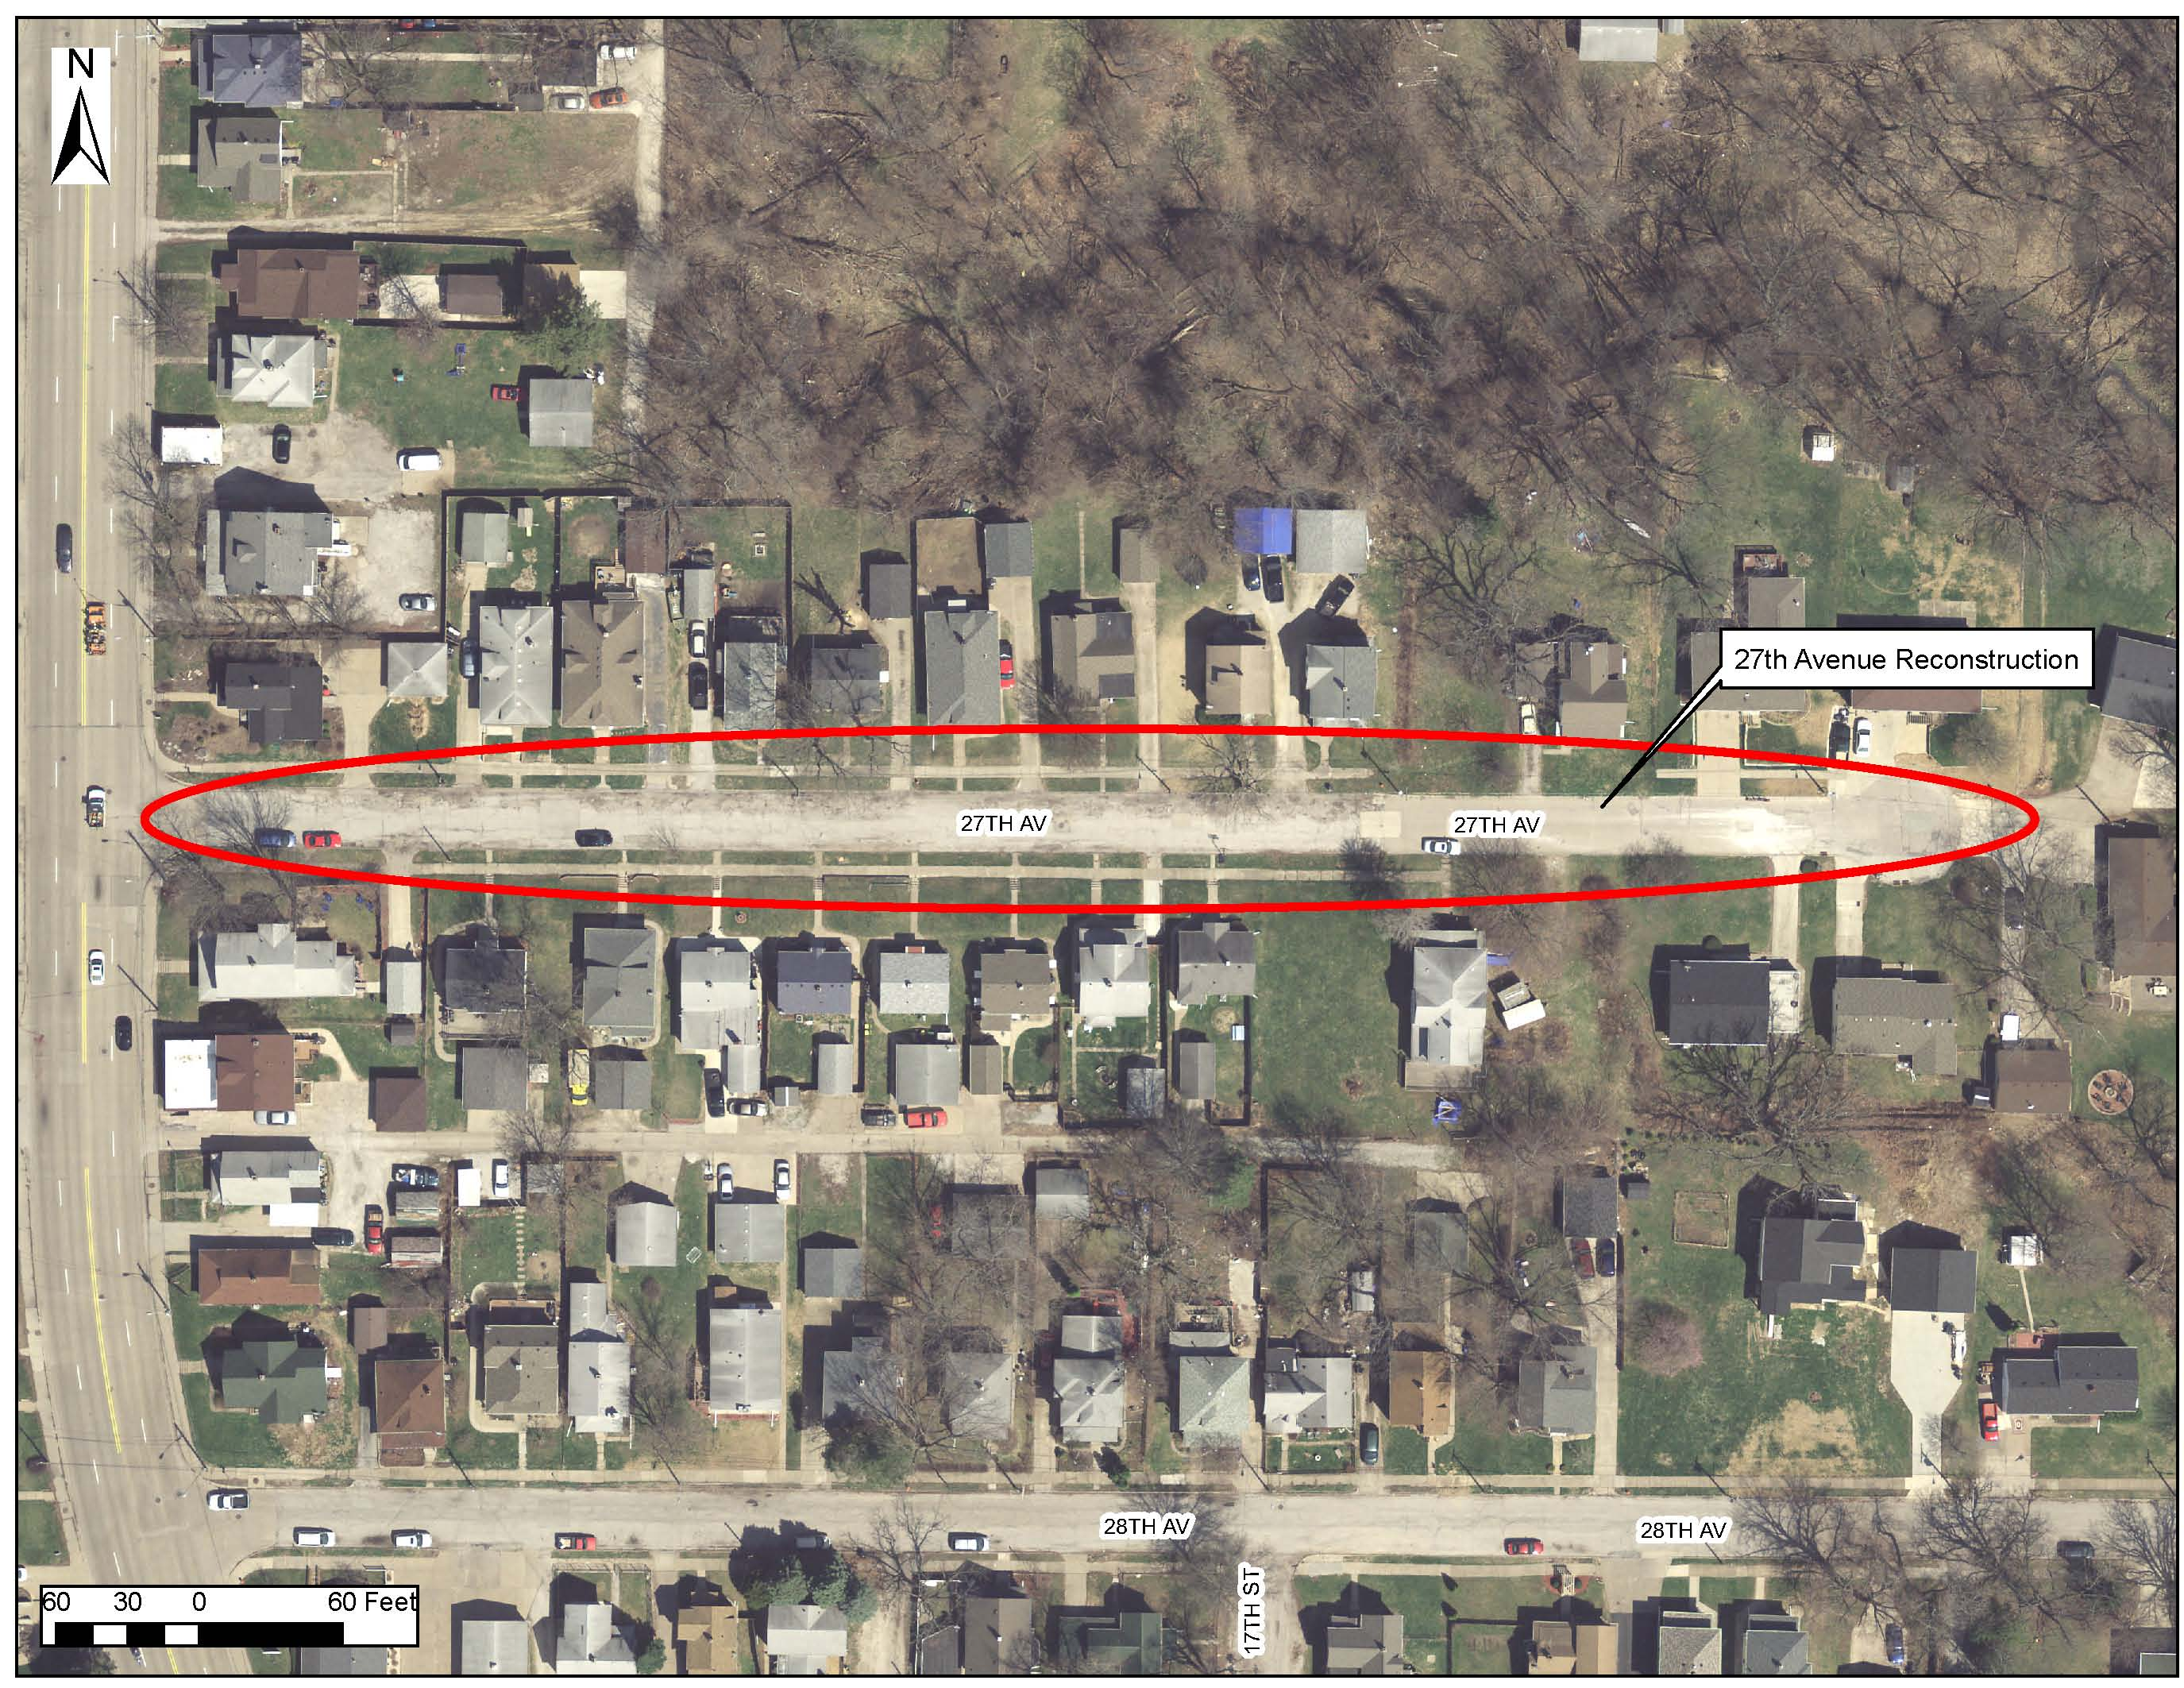 27th Avenue Reconstruction Project